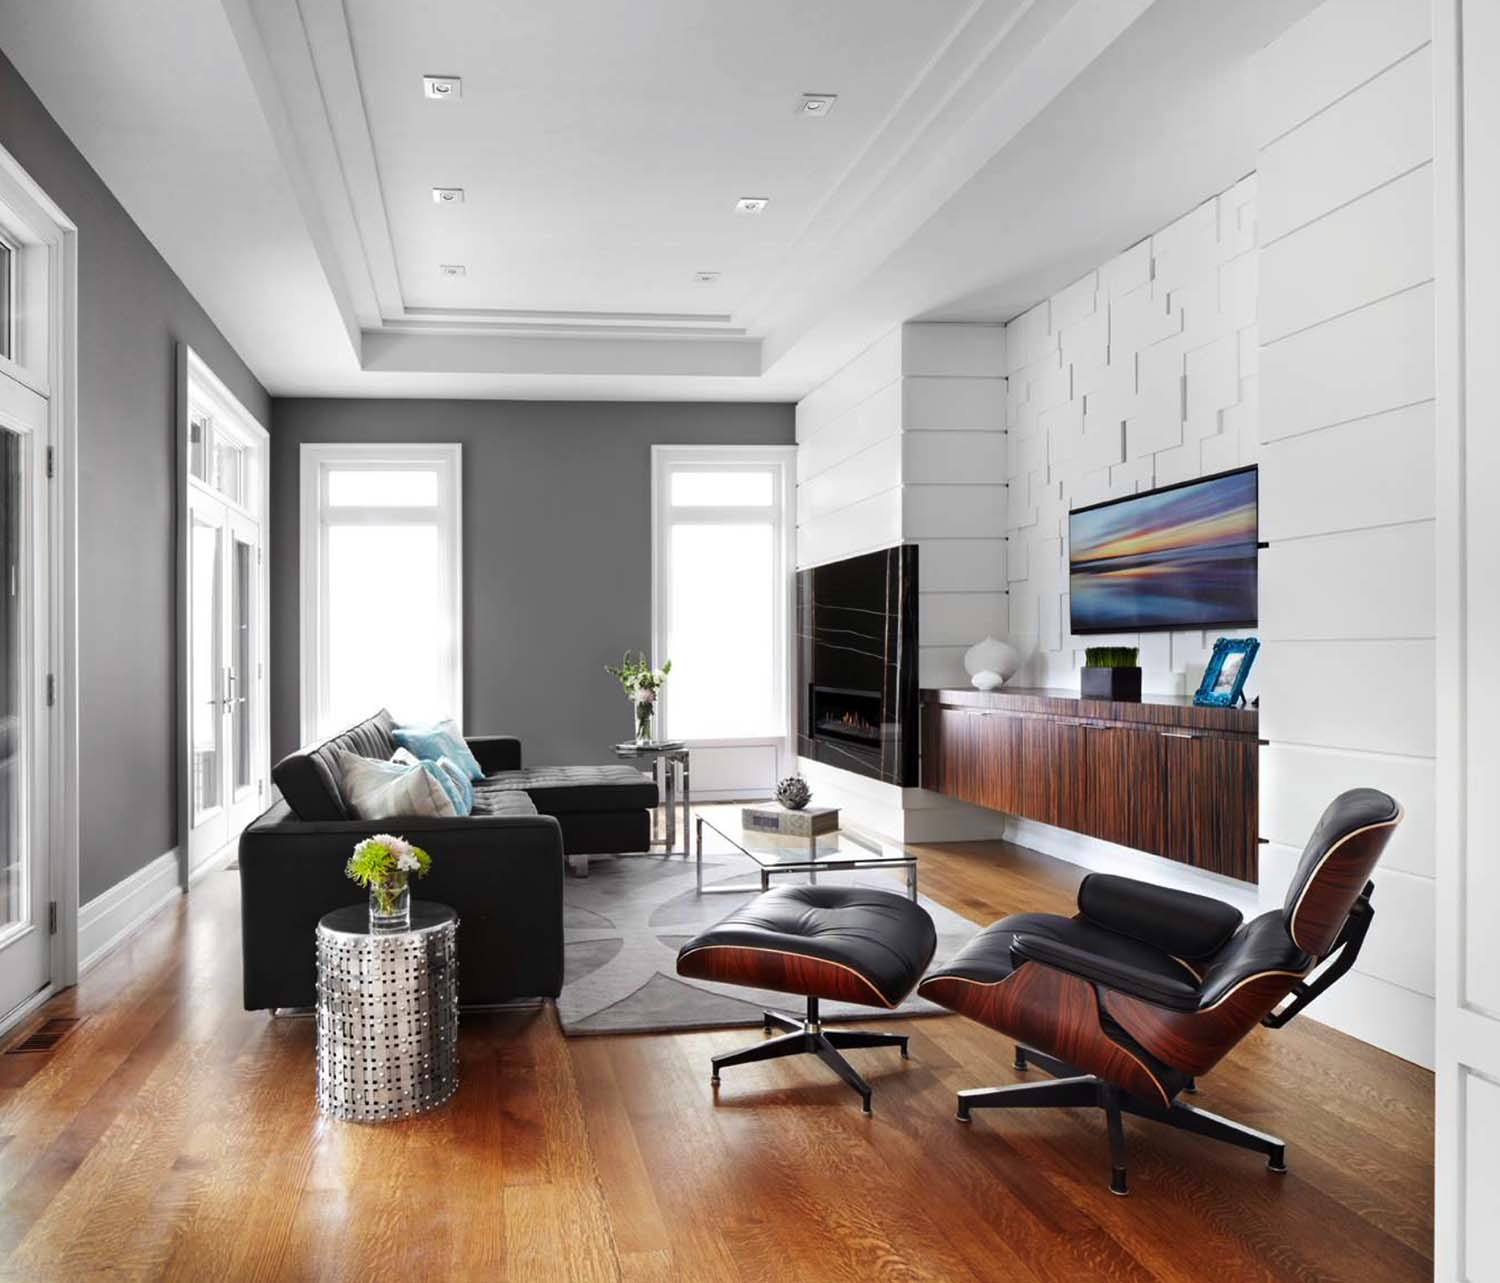 Black Furniture: Interior Design Photo Ideas. White interior with wooden trimming and the black touches of the couch and folding armchair